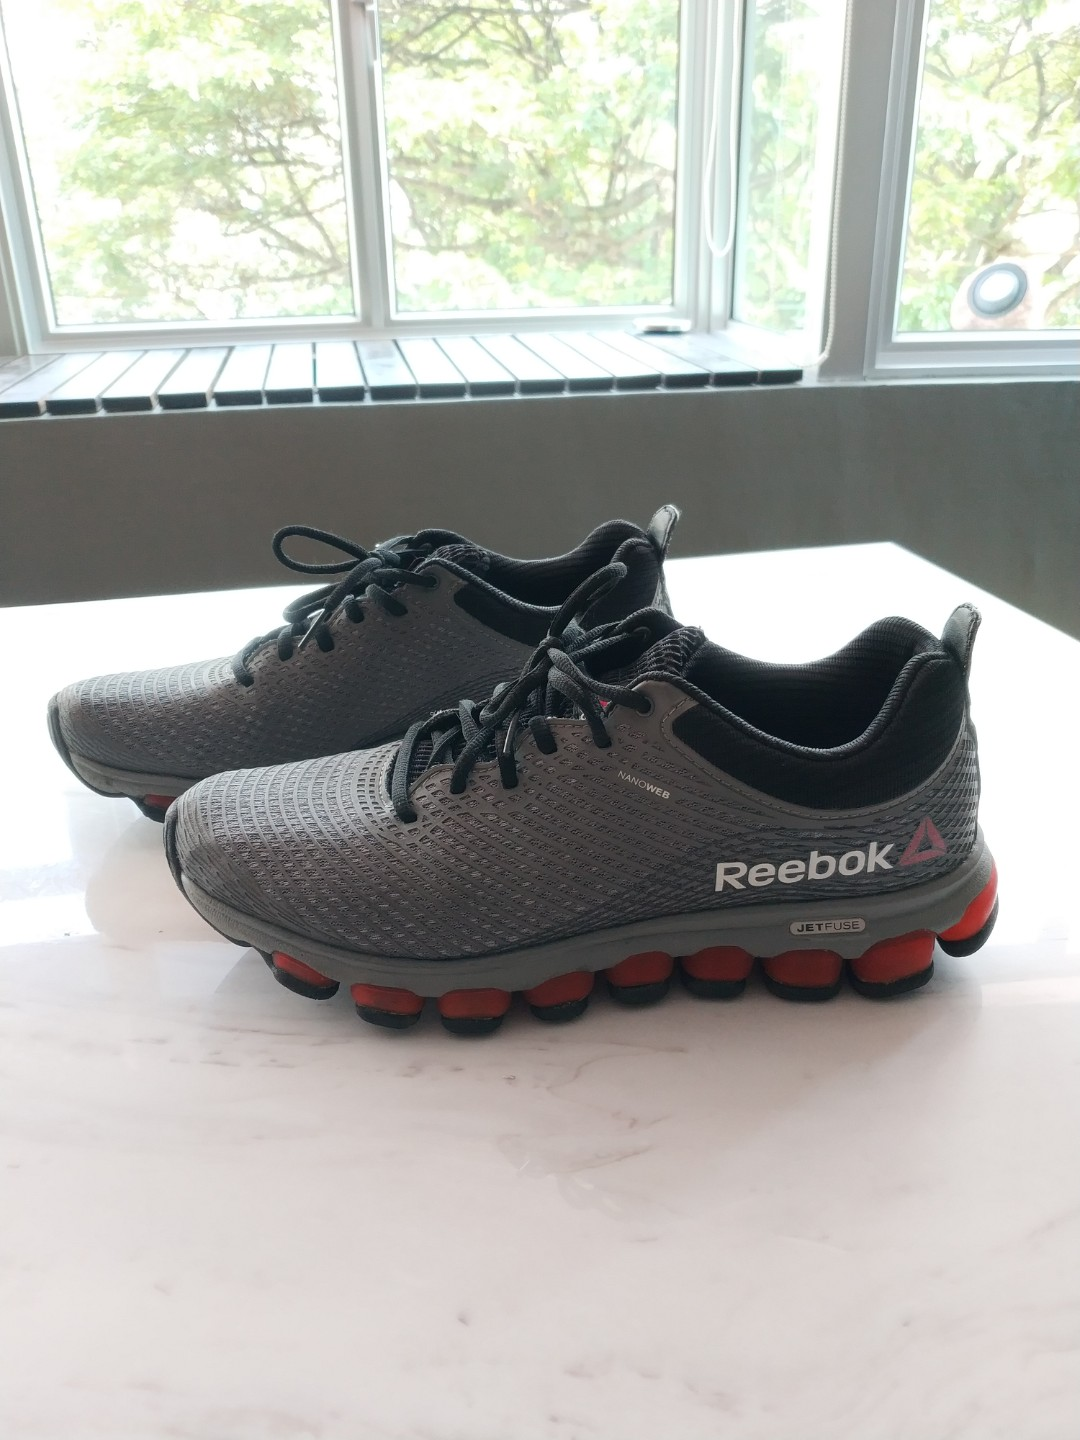 822a157b476e Reebok Jetfuse Running Shoes